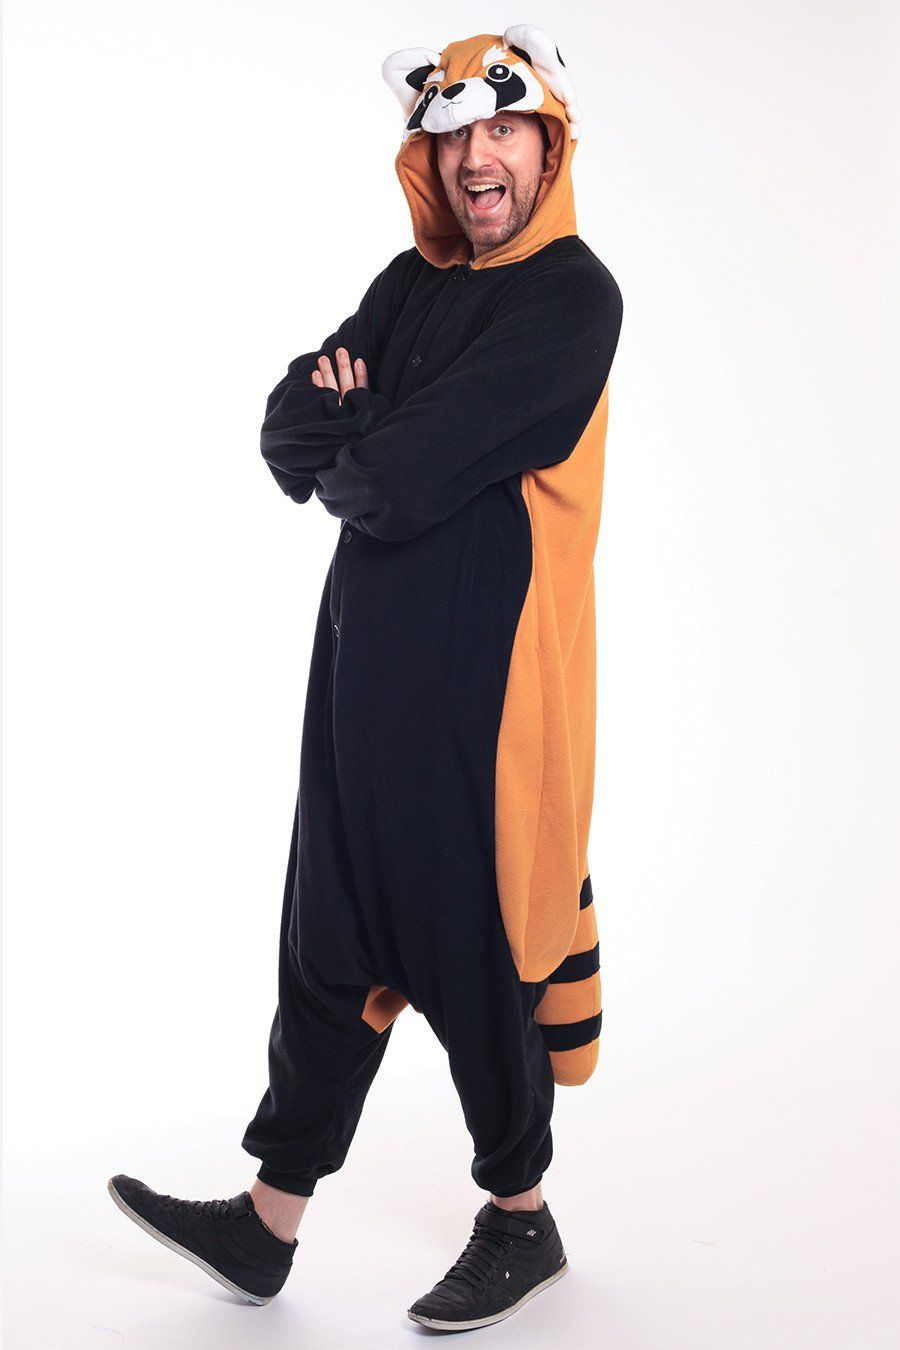 Image of: Amazon xtall Red Panda Onesie Kigurumi Animal Costume Adult Pajamas Pinterest Red Panda Kigurumis Onesies Panda Animal Costumes